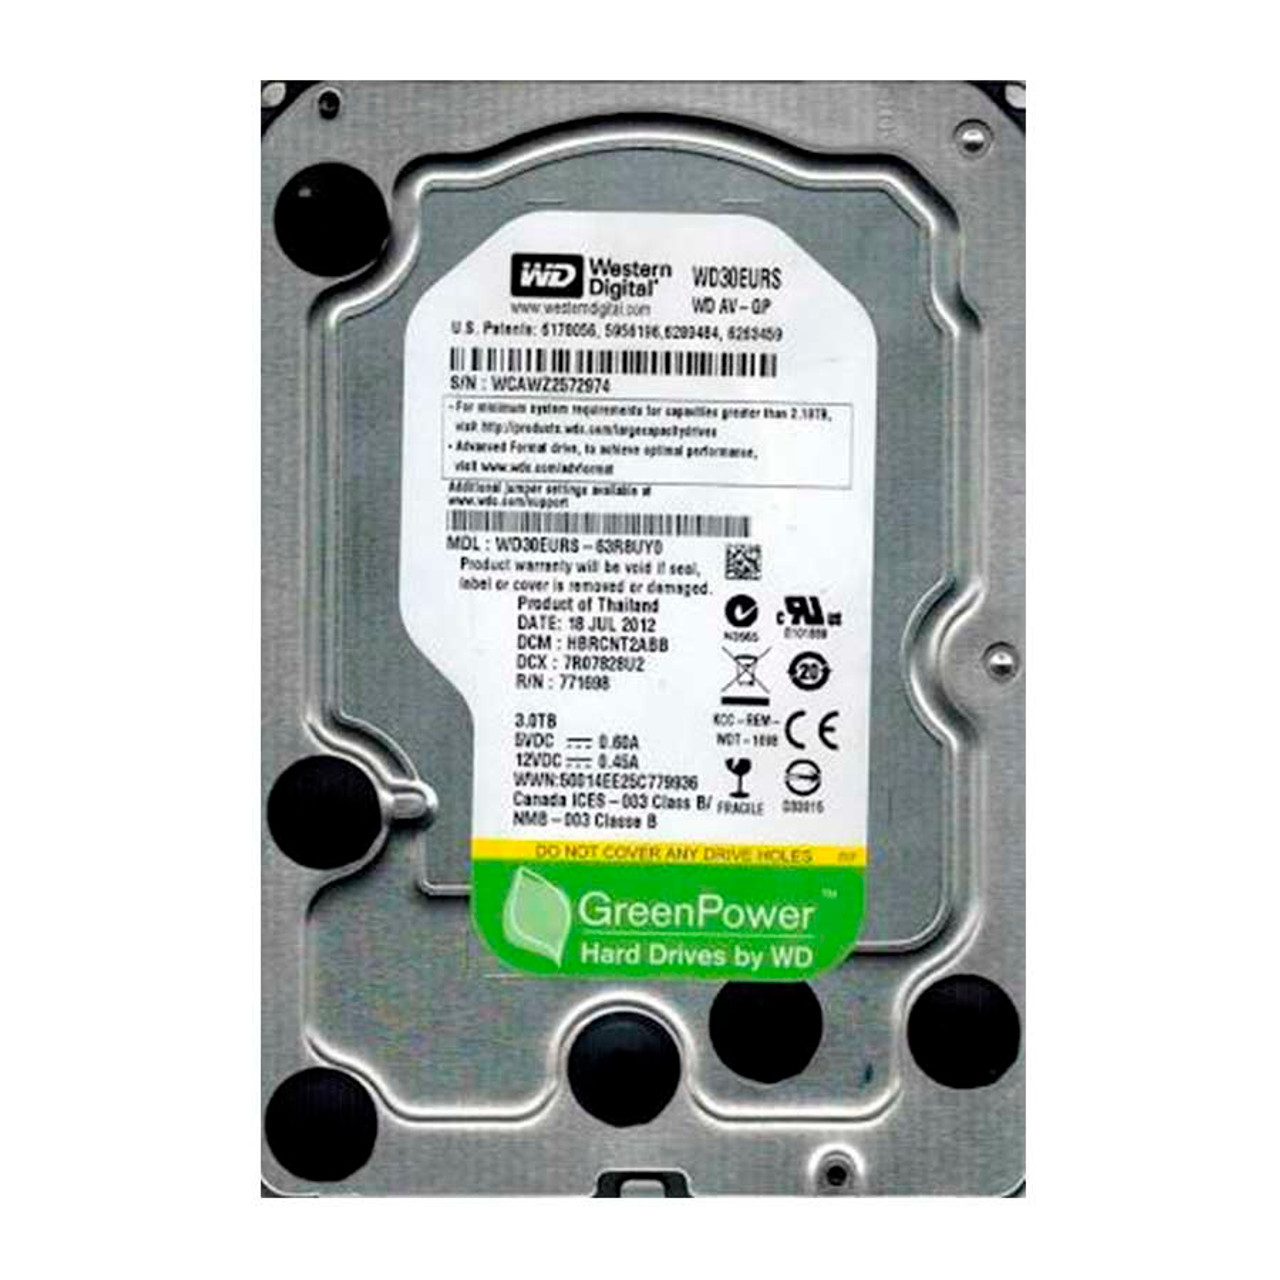 Western Digital WD30EURS AV-GP 3TB HDD Internal Hard Drive